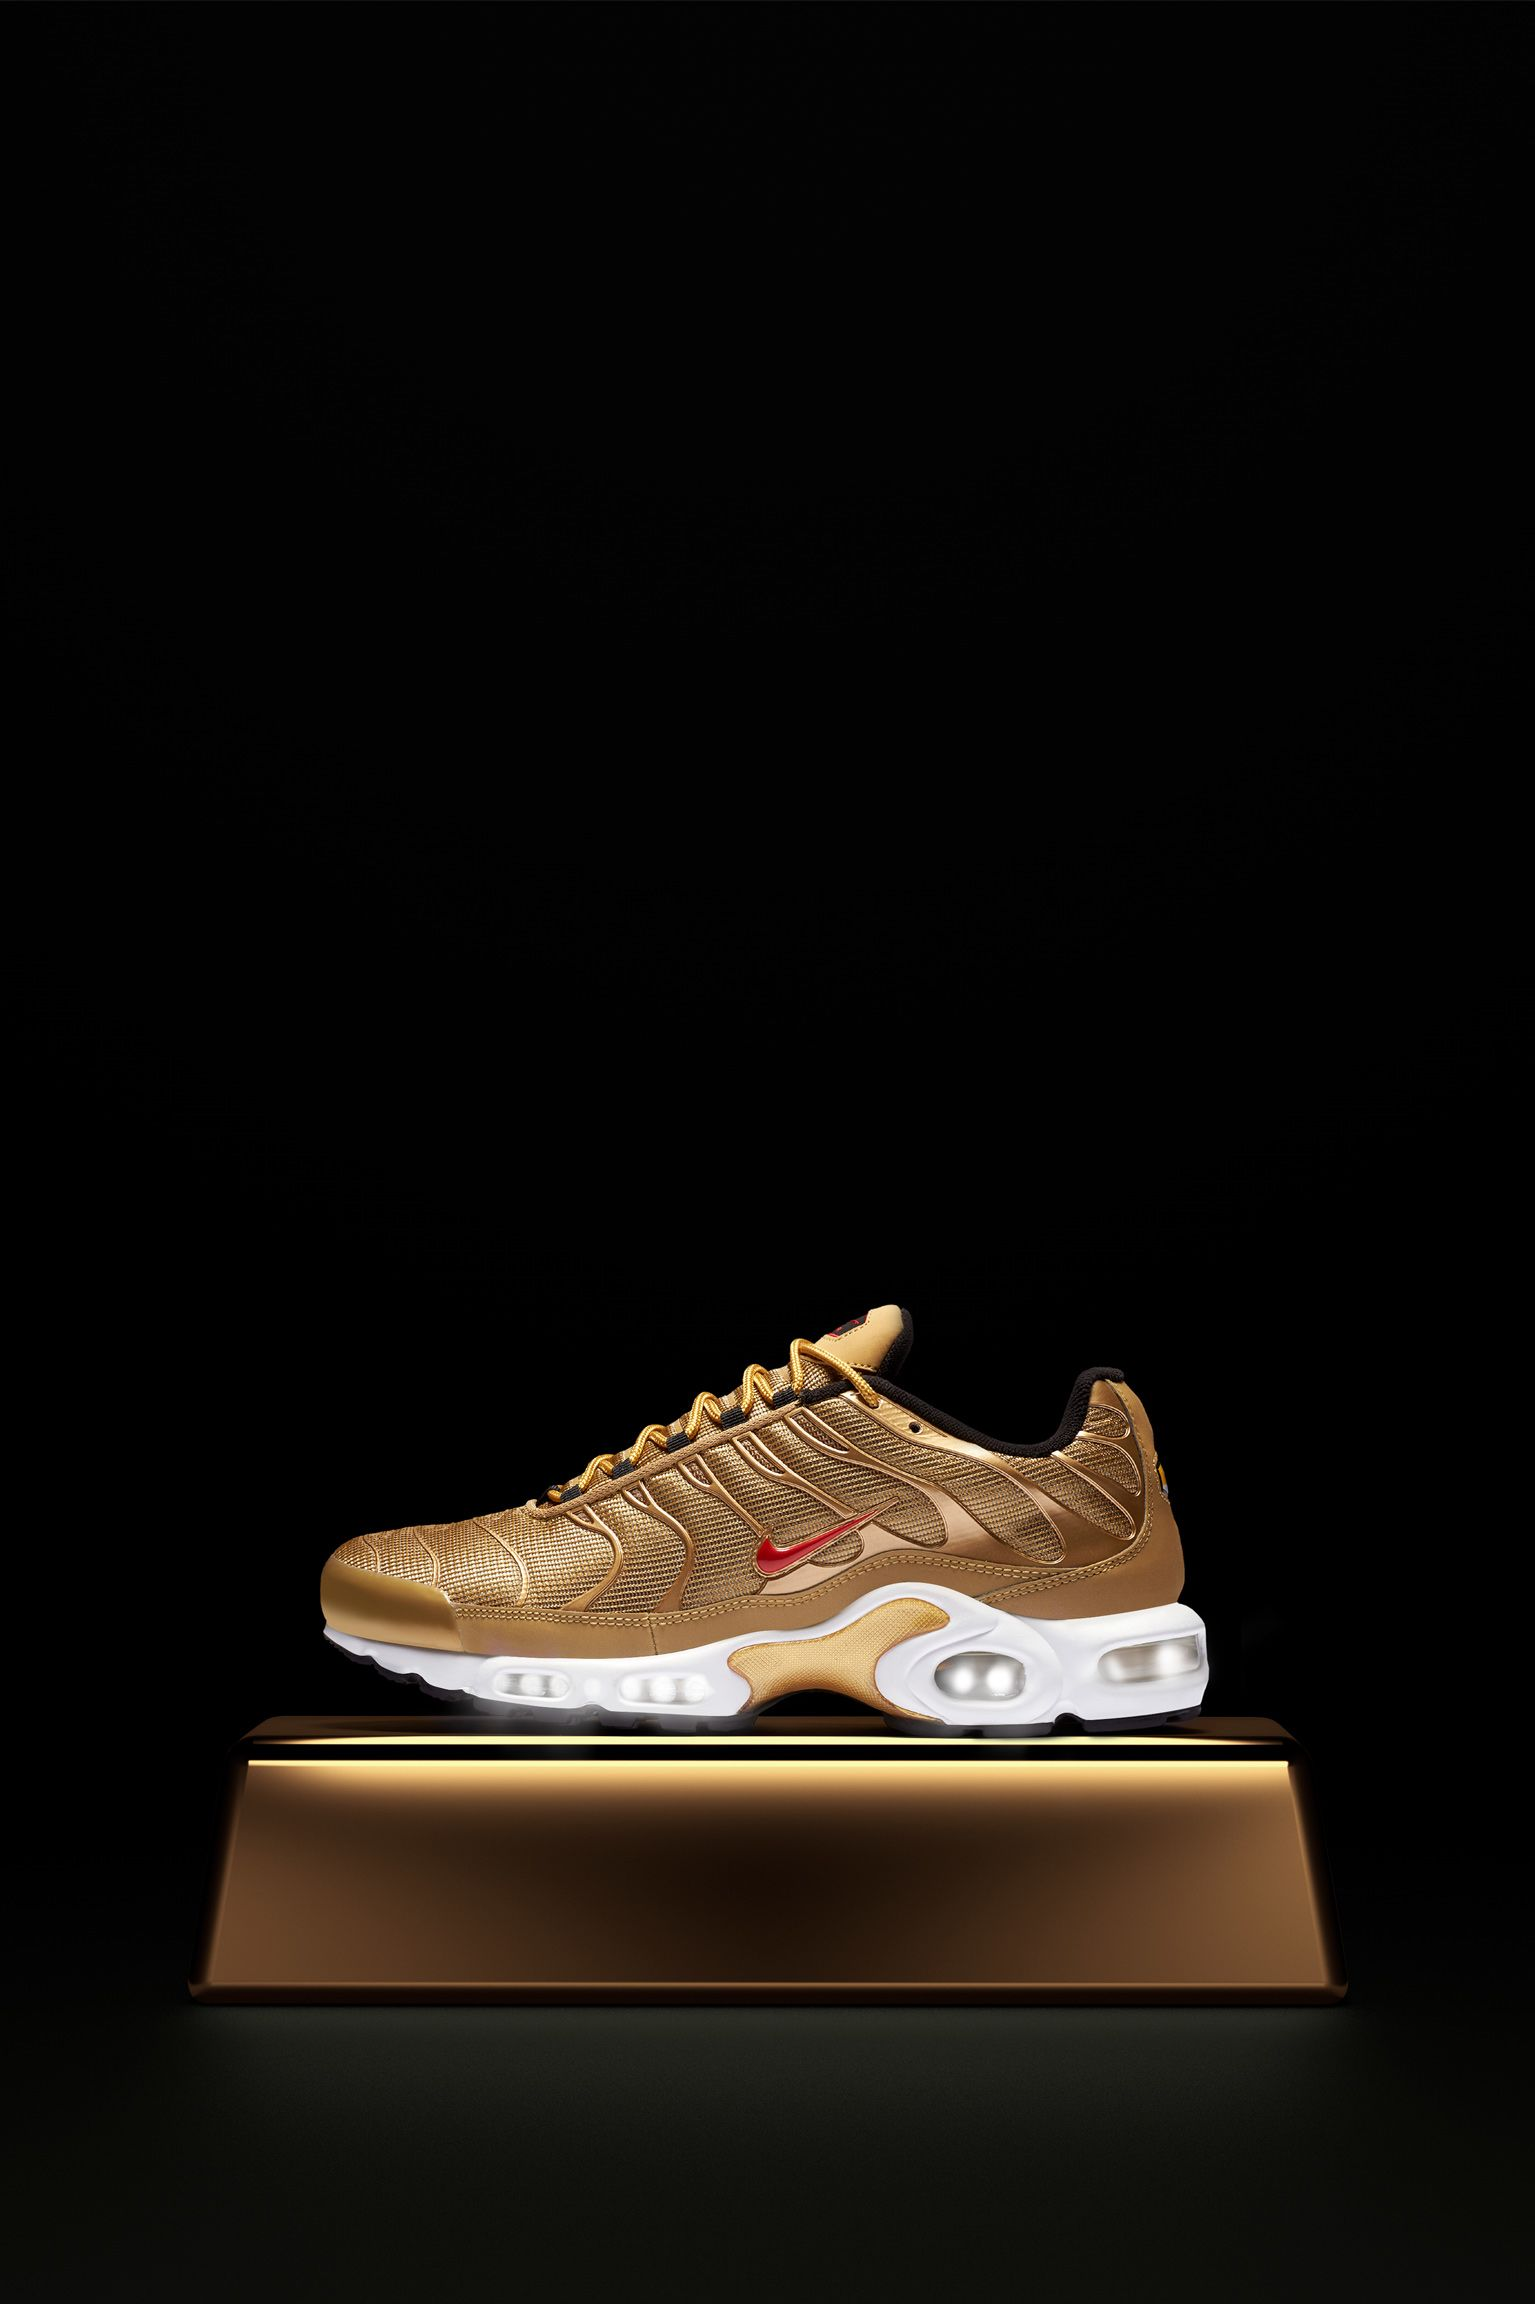 nike air max golden